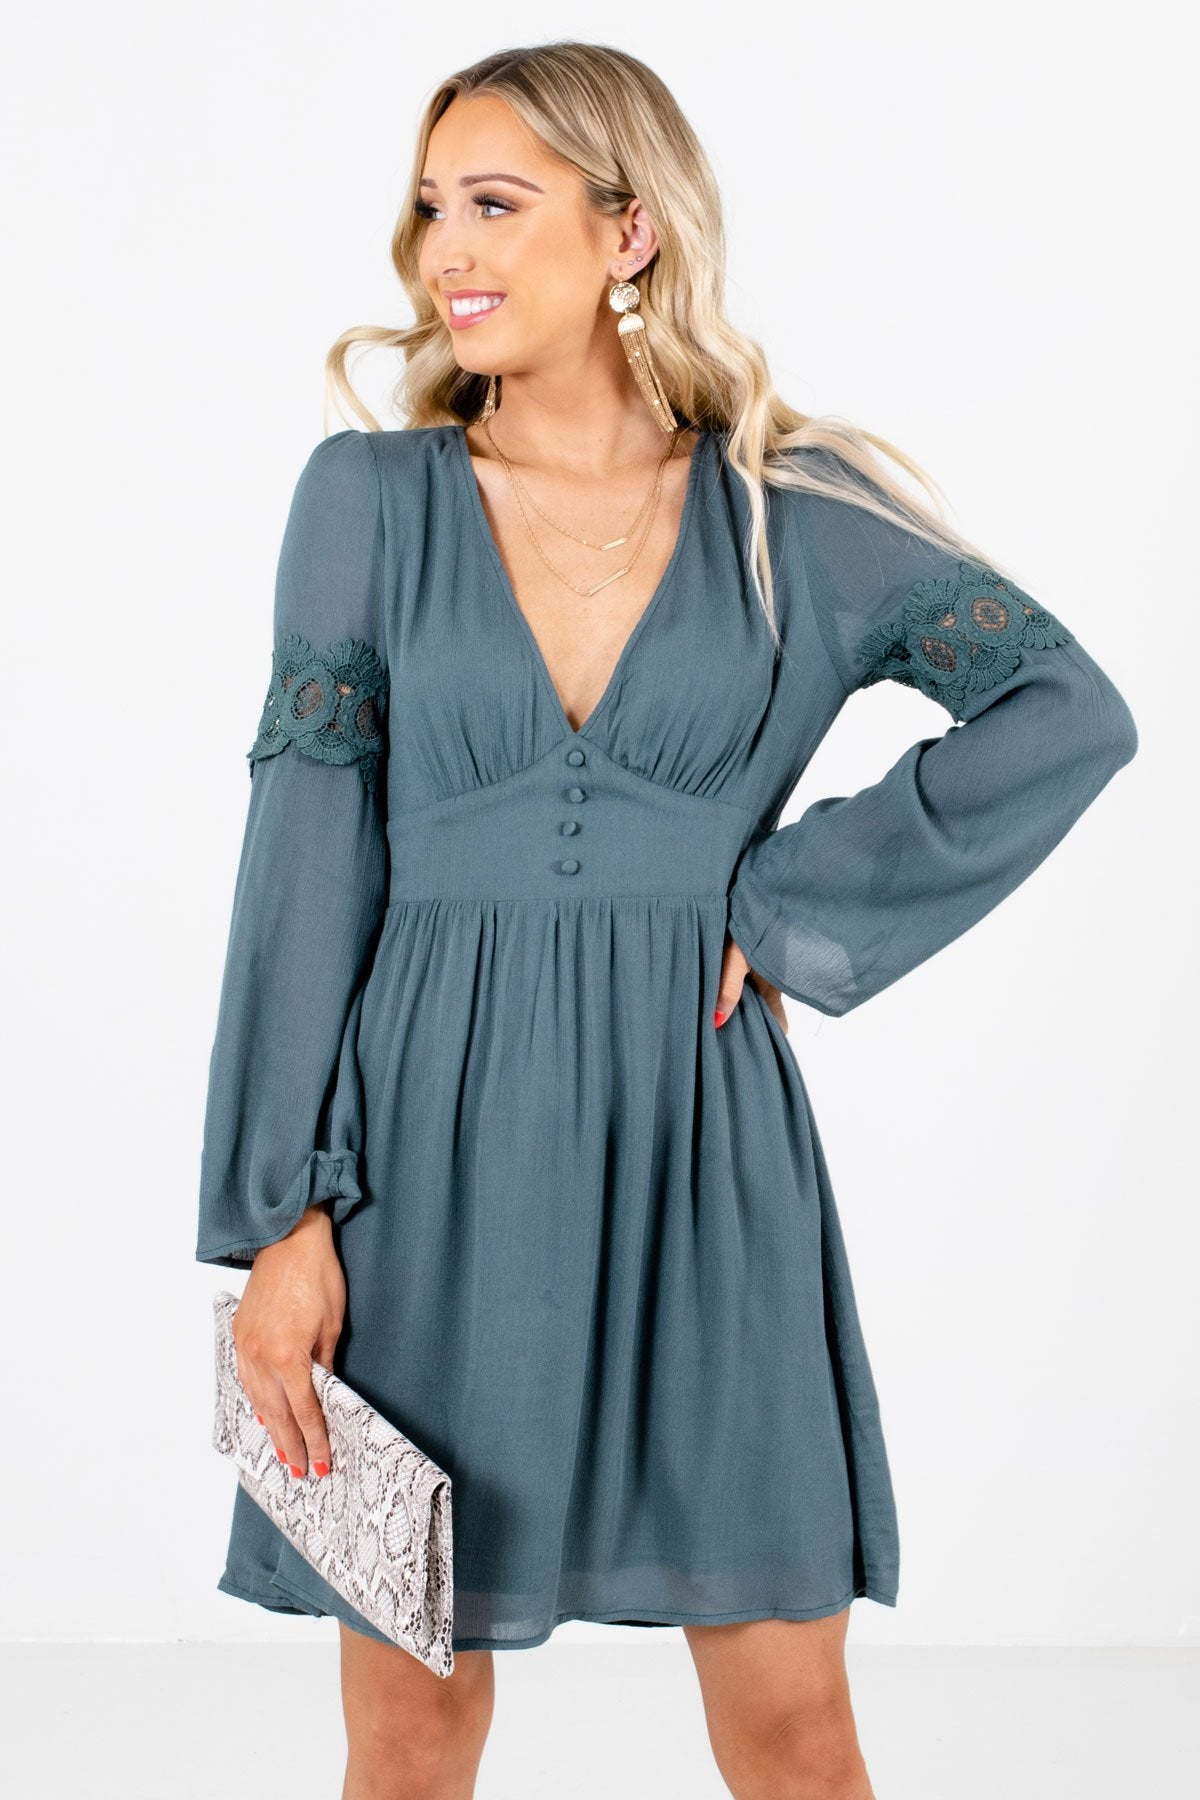 Blue Deep V-Neckline Boutique Mini Dresses for Women